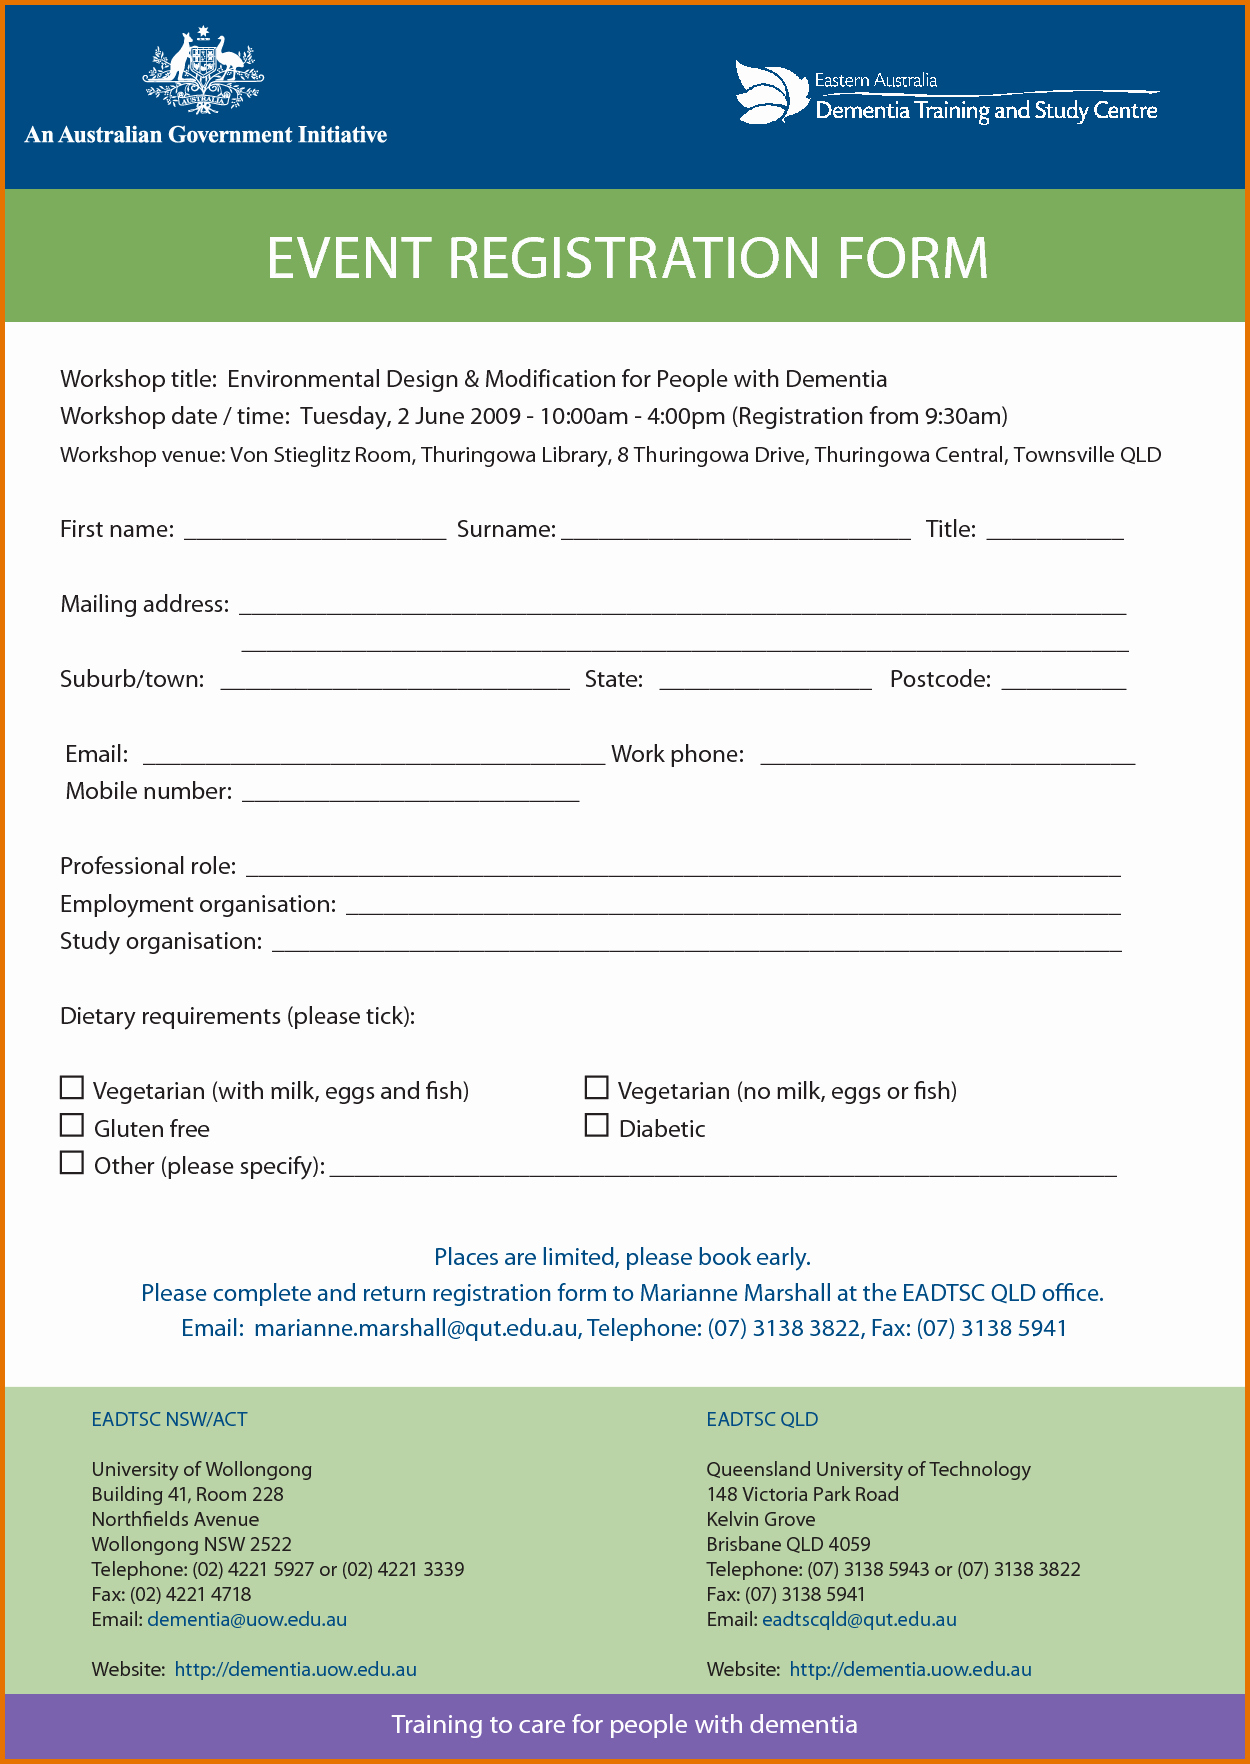 Registration form Template Word Free Inspirational Registration form Template Wordreference Letters Words